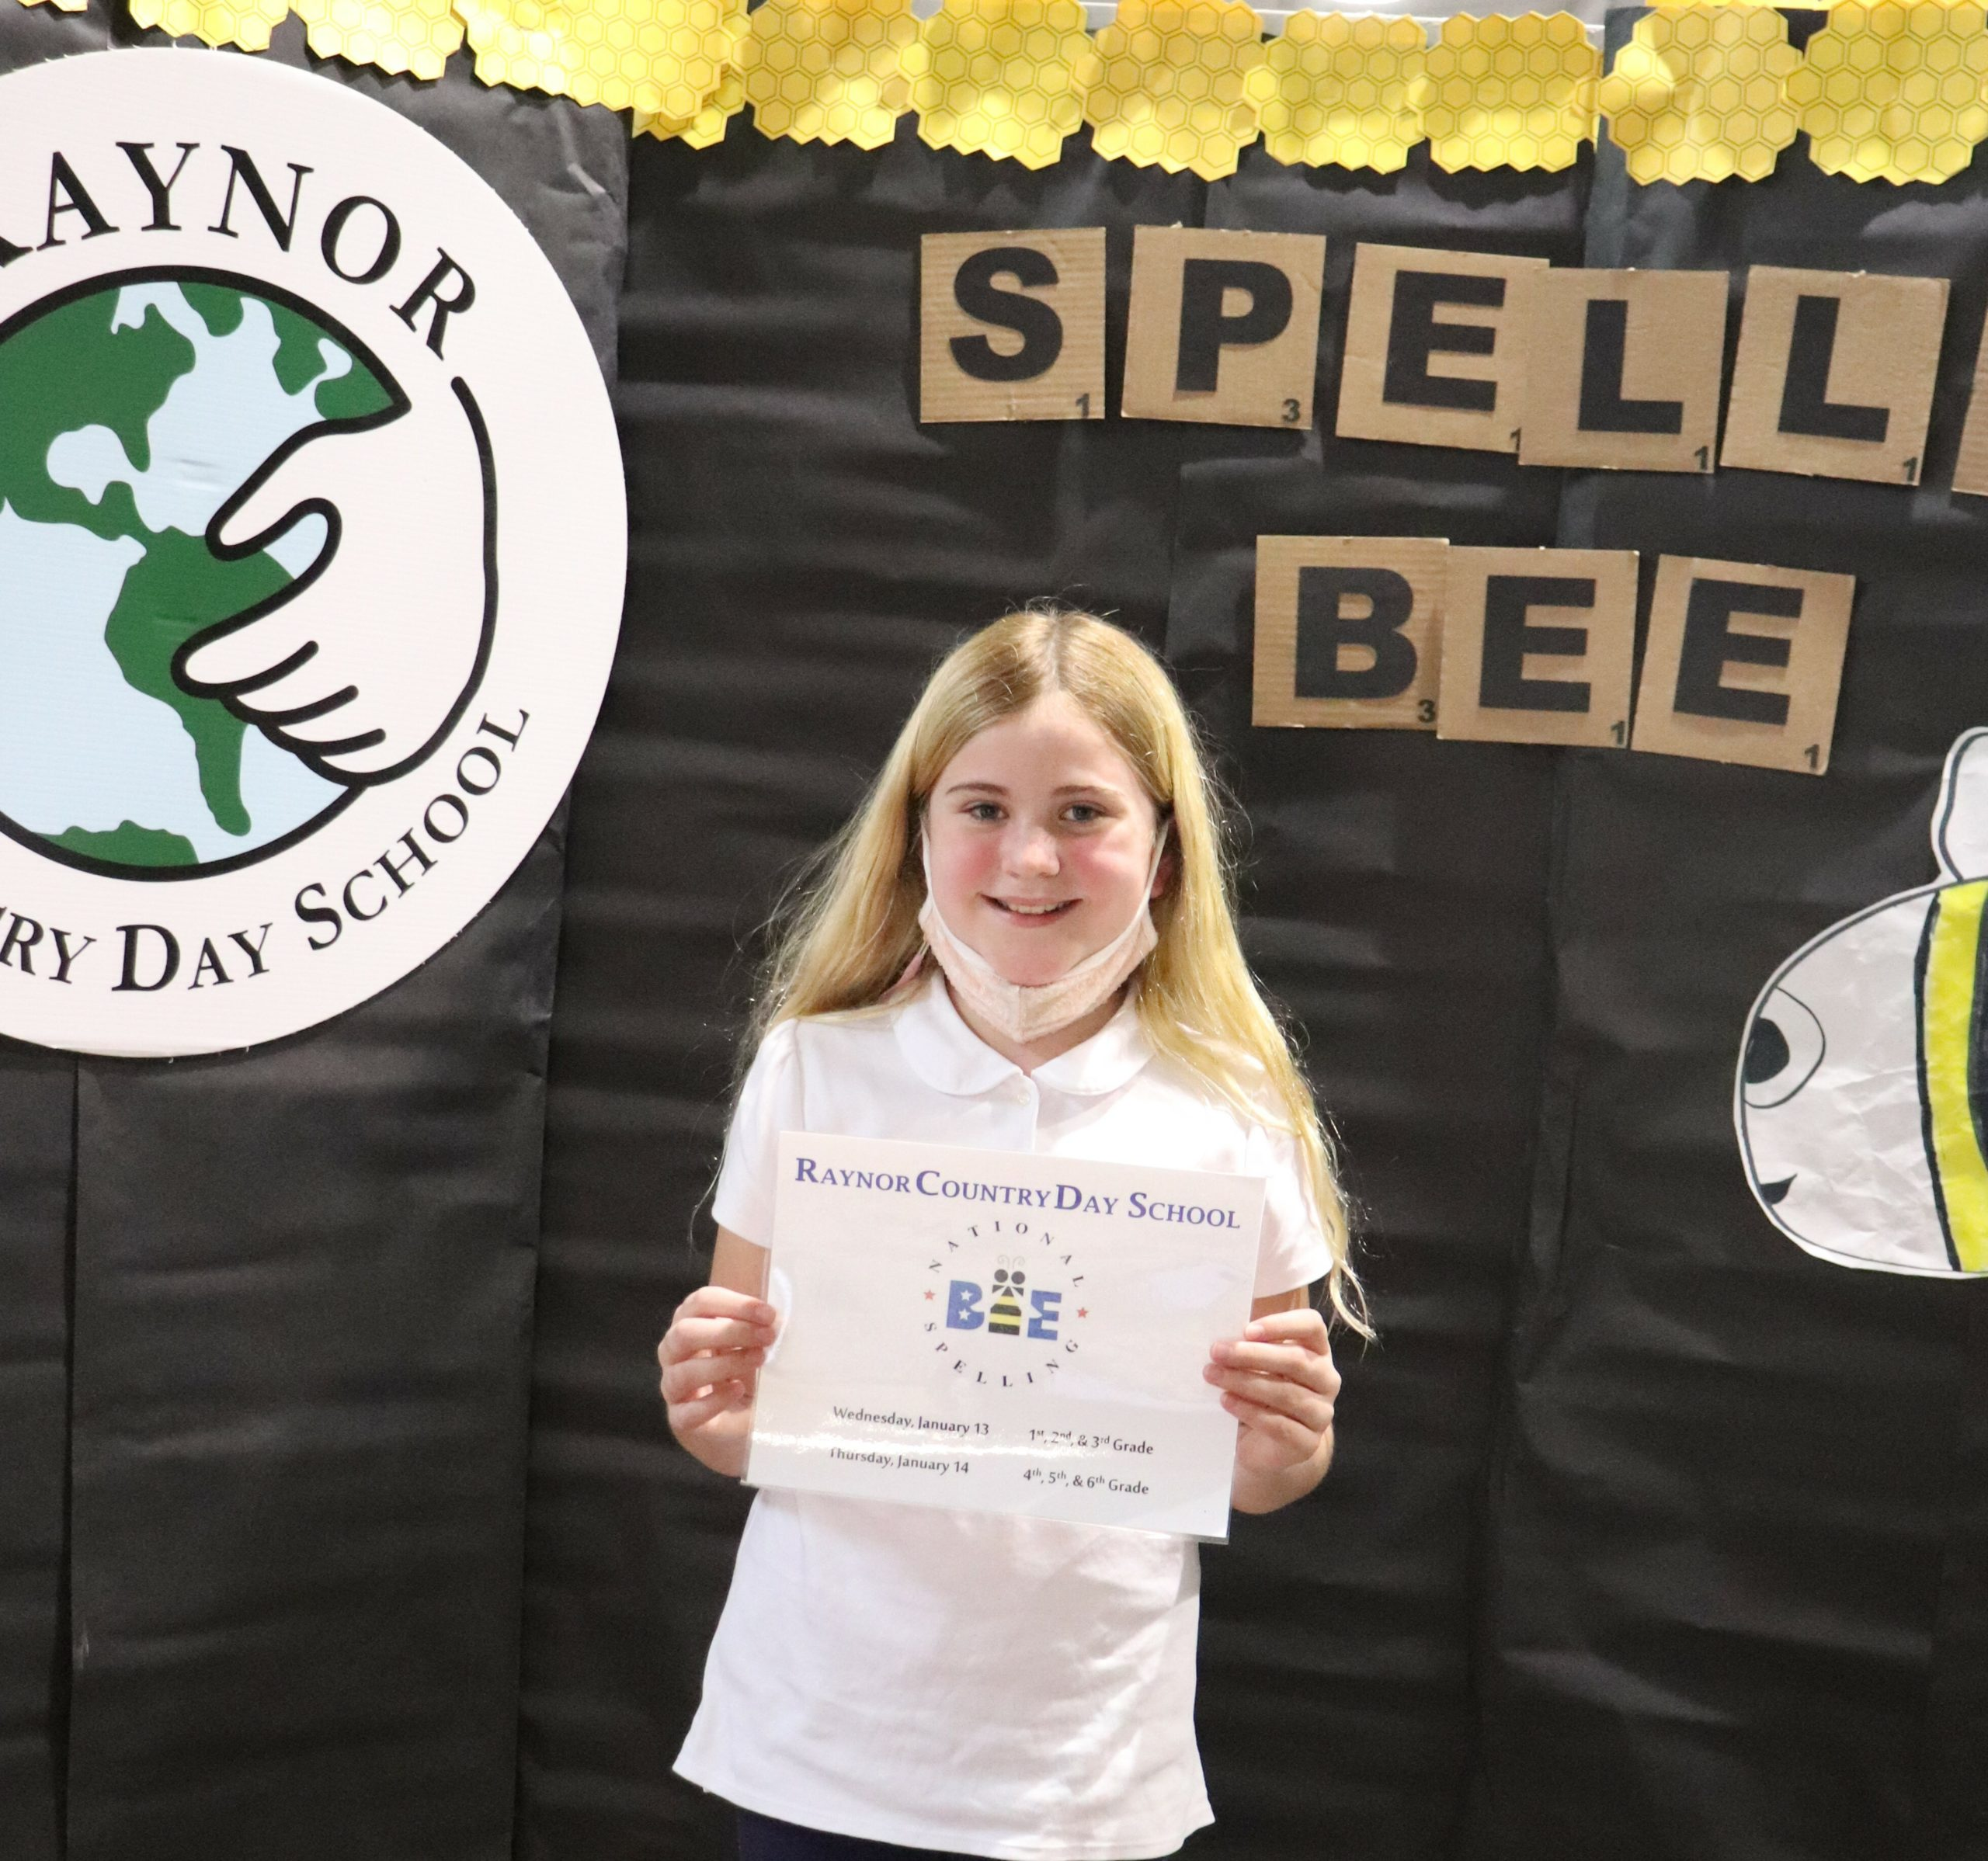 Fifth-grade student, Rebecca Bartha, was awarded first place during the Scripps' National Institute Spelling Bee held on the Raynor Country Day School Campus, in Speonk.